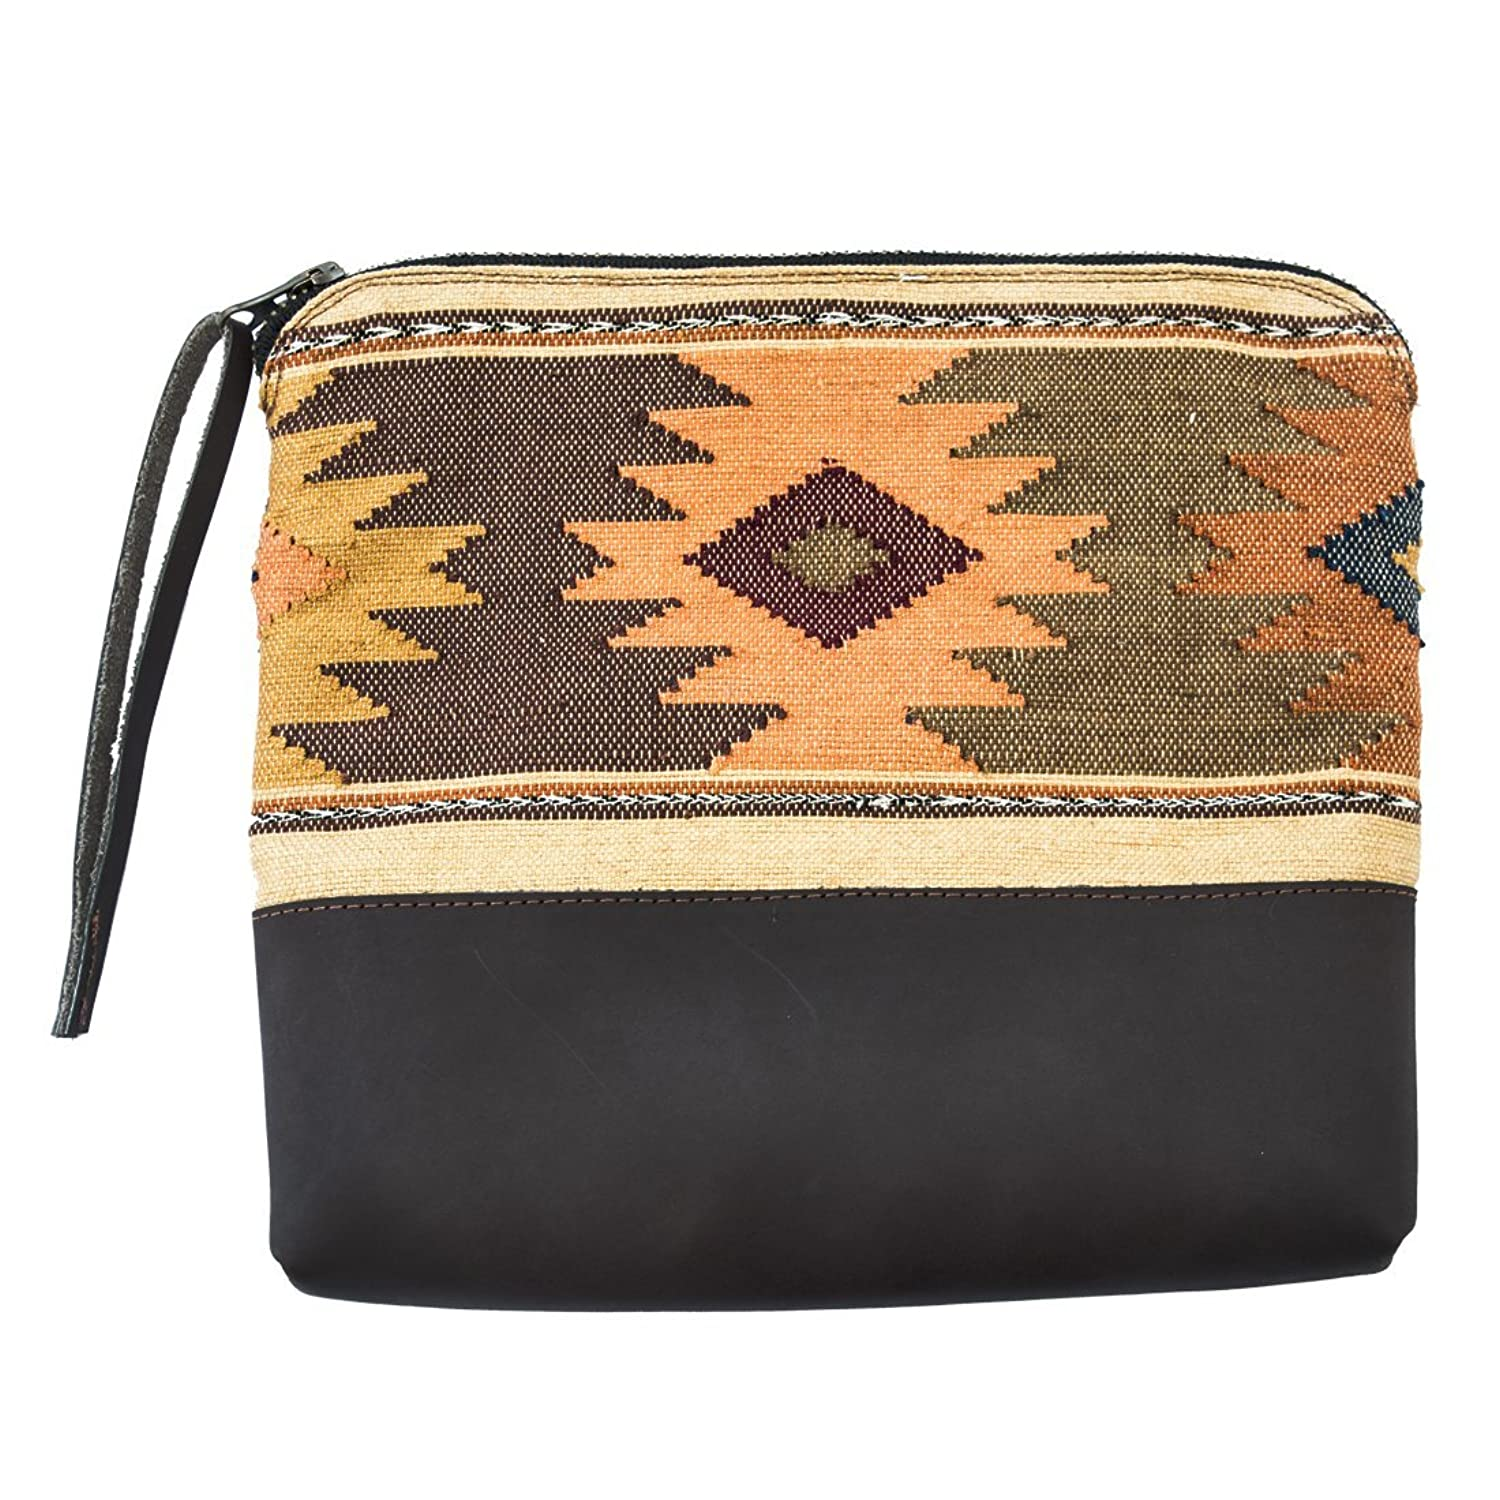 Guatemalan Native Comalapa Clutch Bag Handmade by Hide & Drink :: Sunset